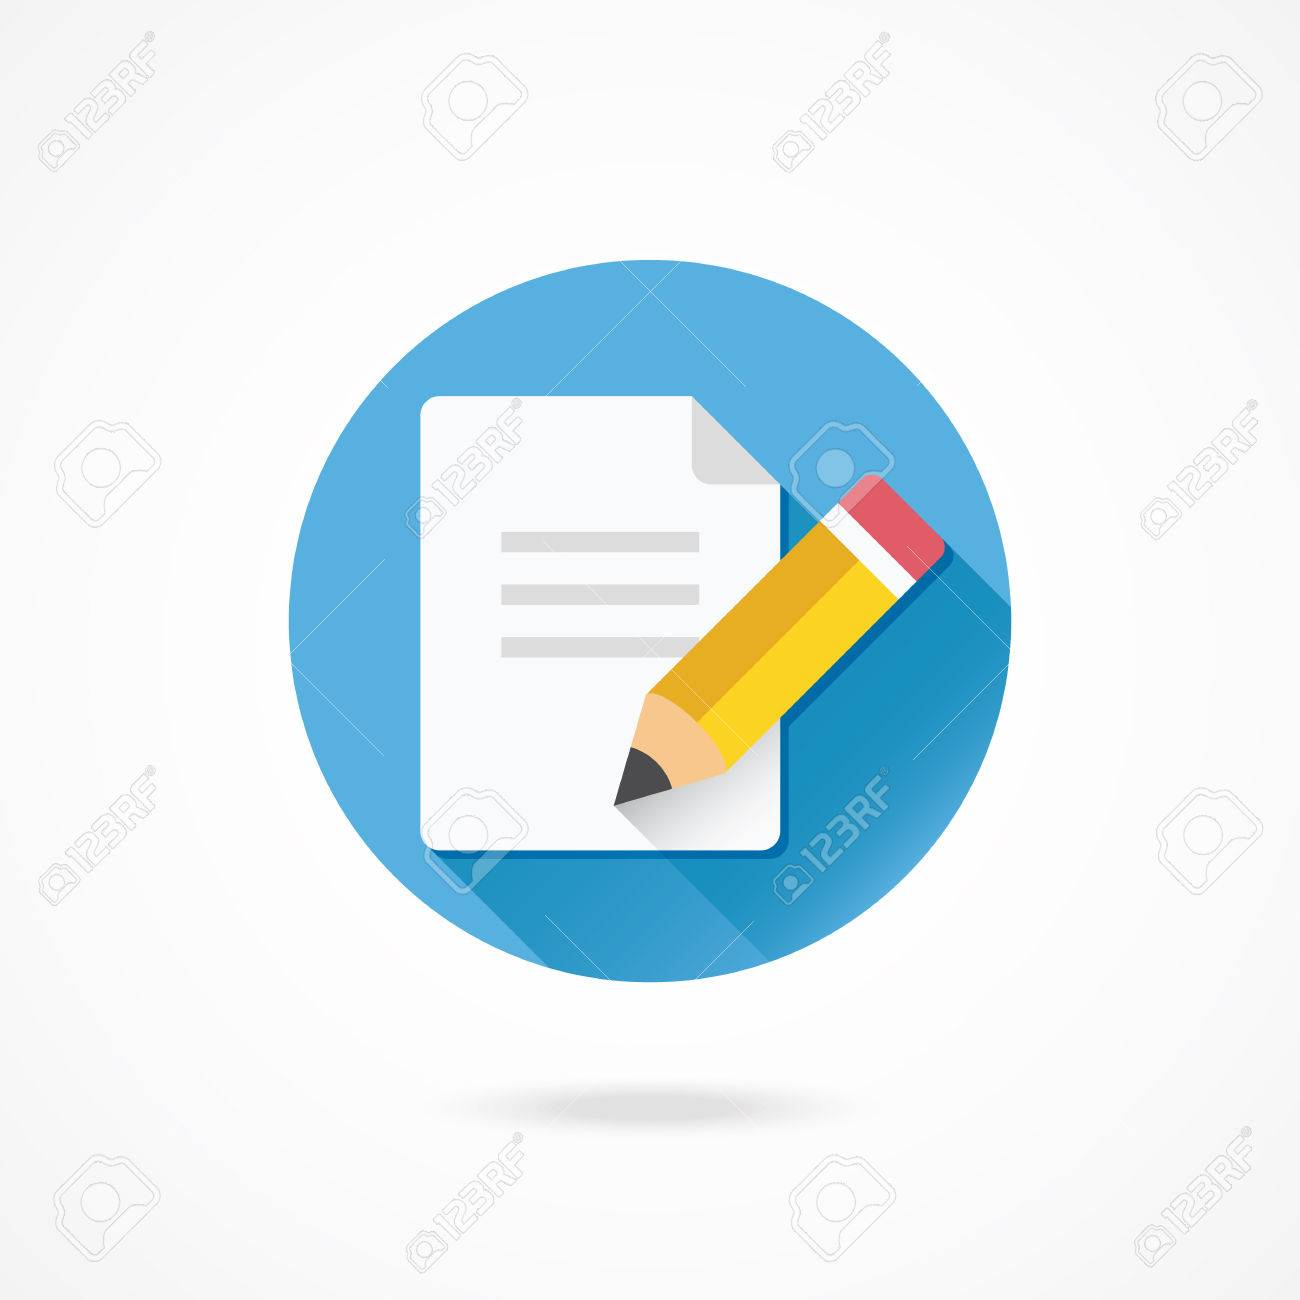 Vector Pencil and Document Icon Stock Vector - 27381874